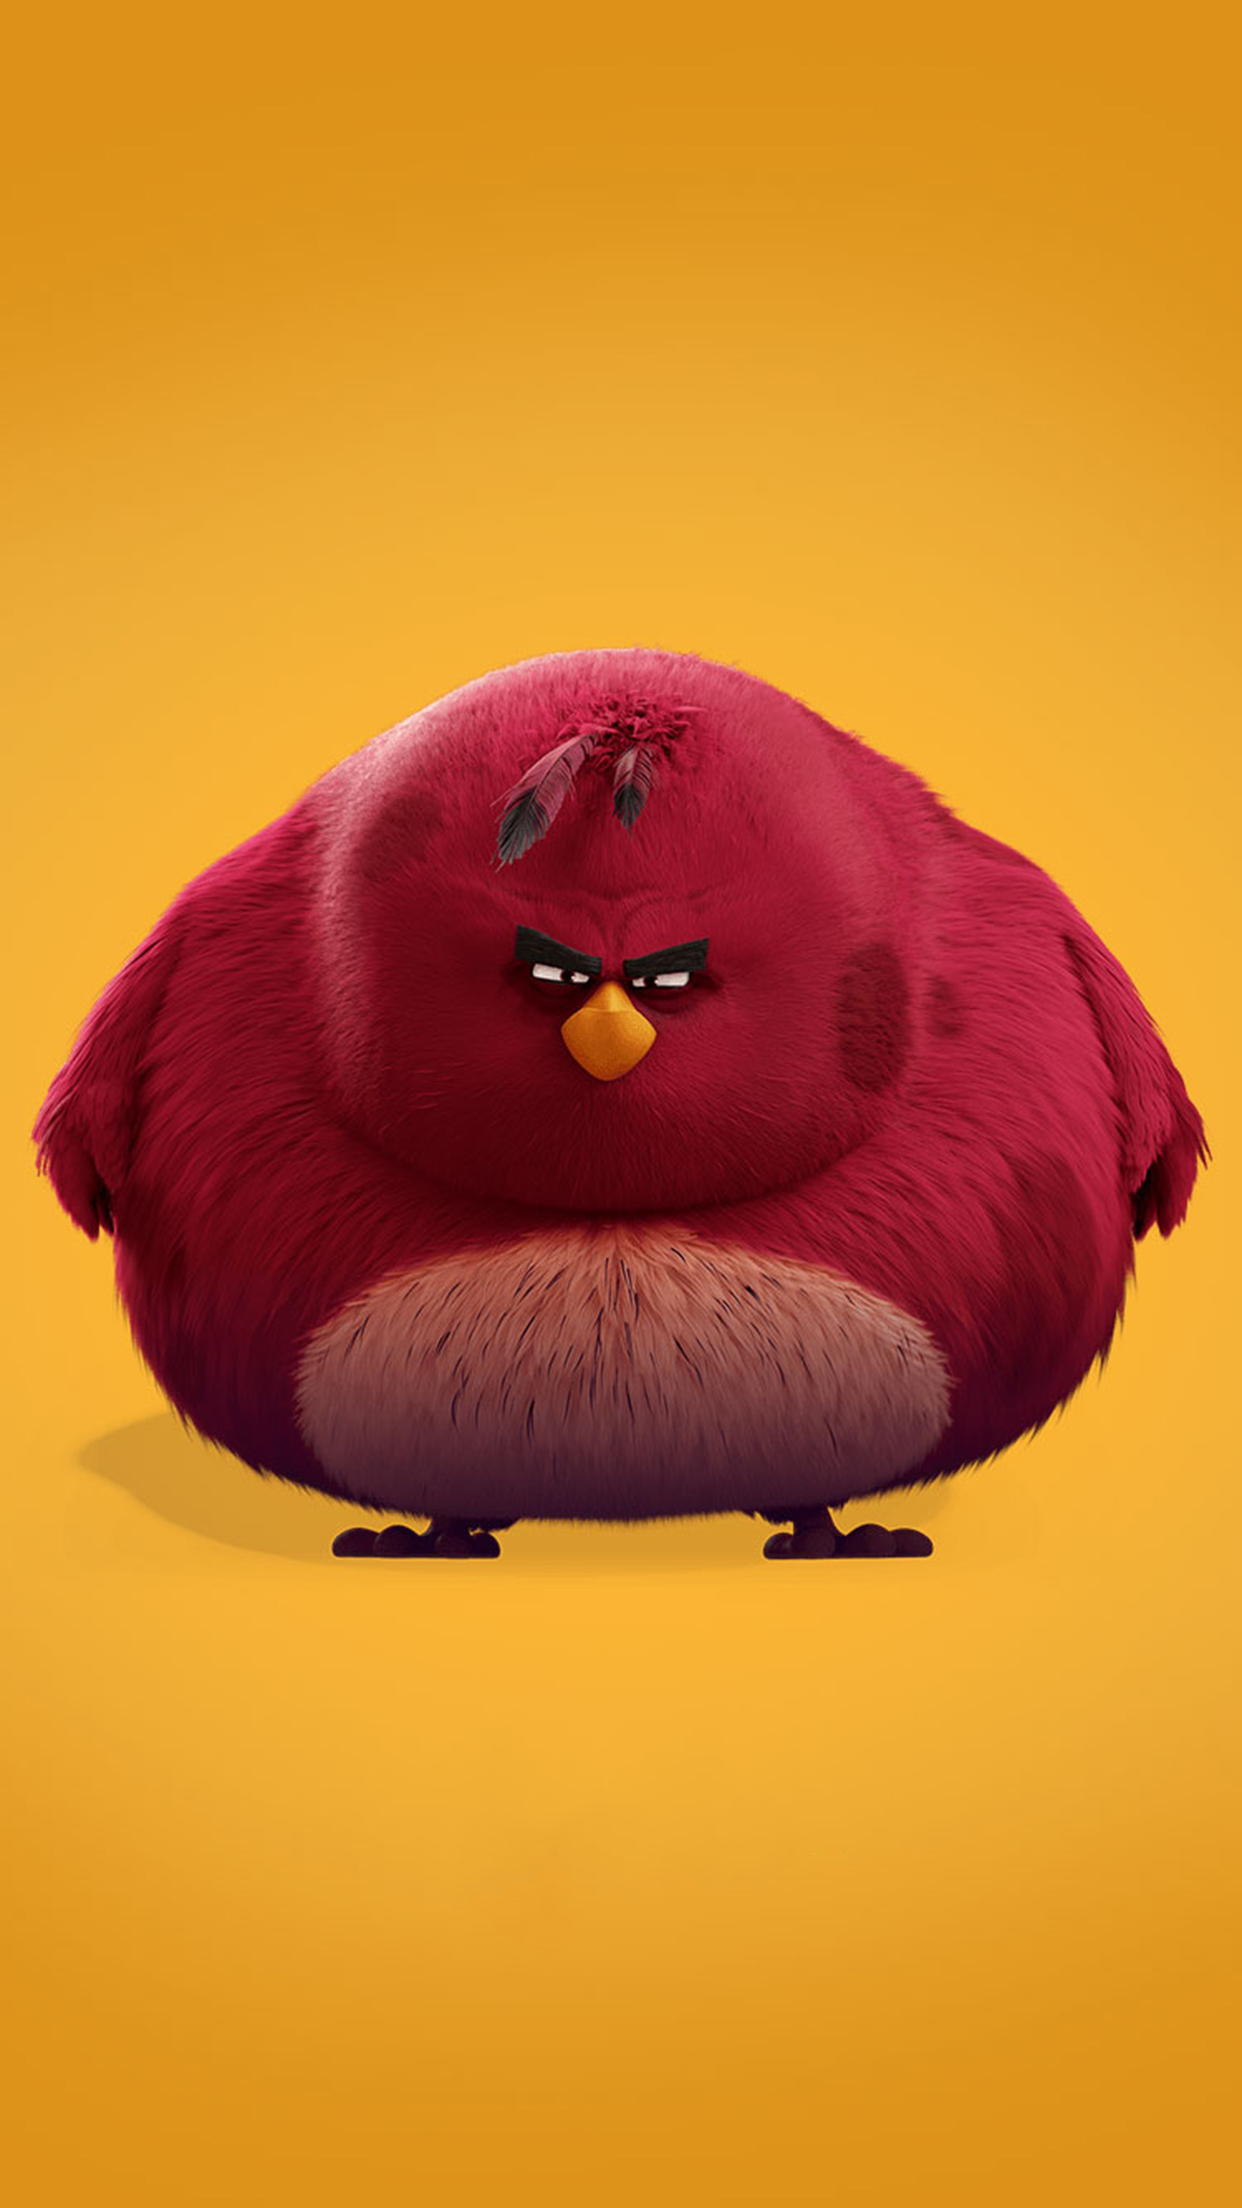 Angry Bird Terence Wallpaper For Iphone X 8 7 6 Free Download